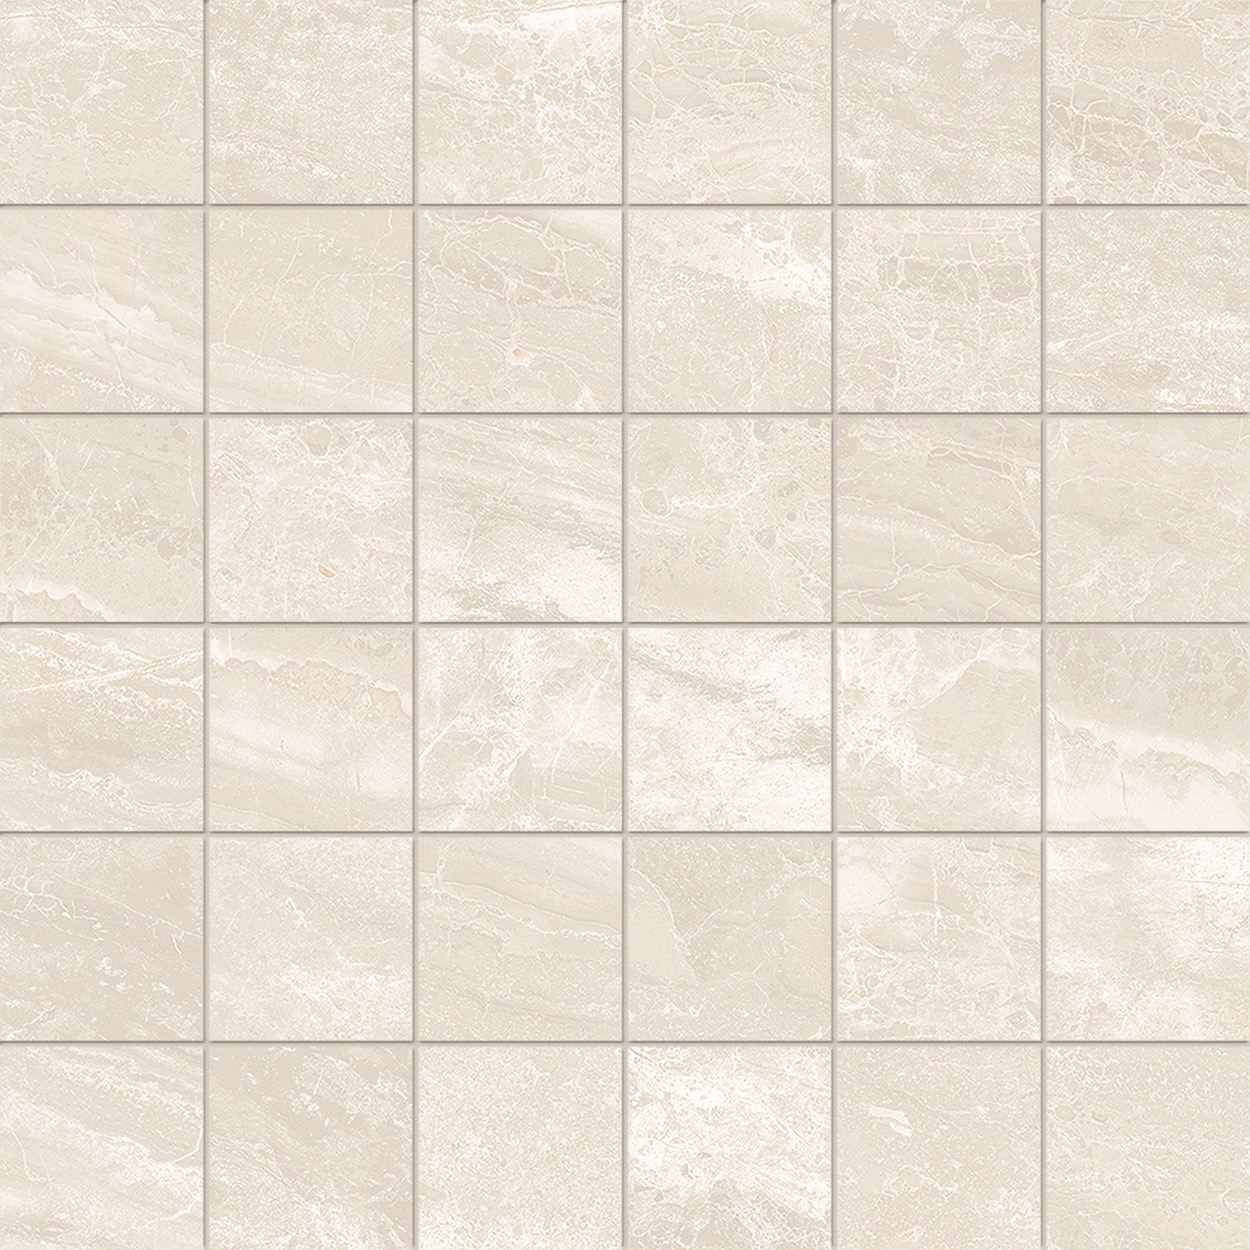 2 x 2 Cosmic Ivory POLISHED porcelain mosaic